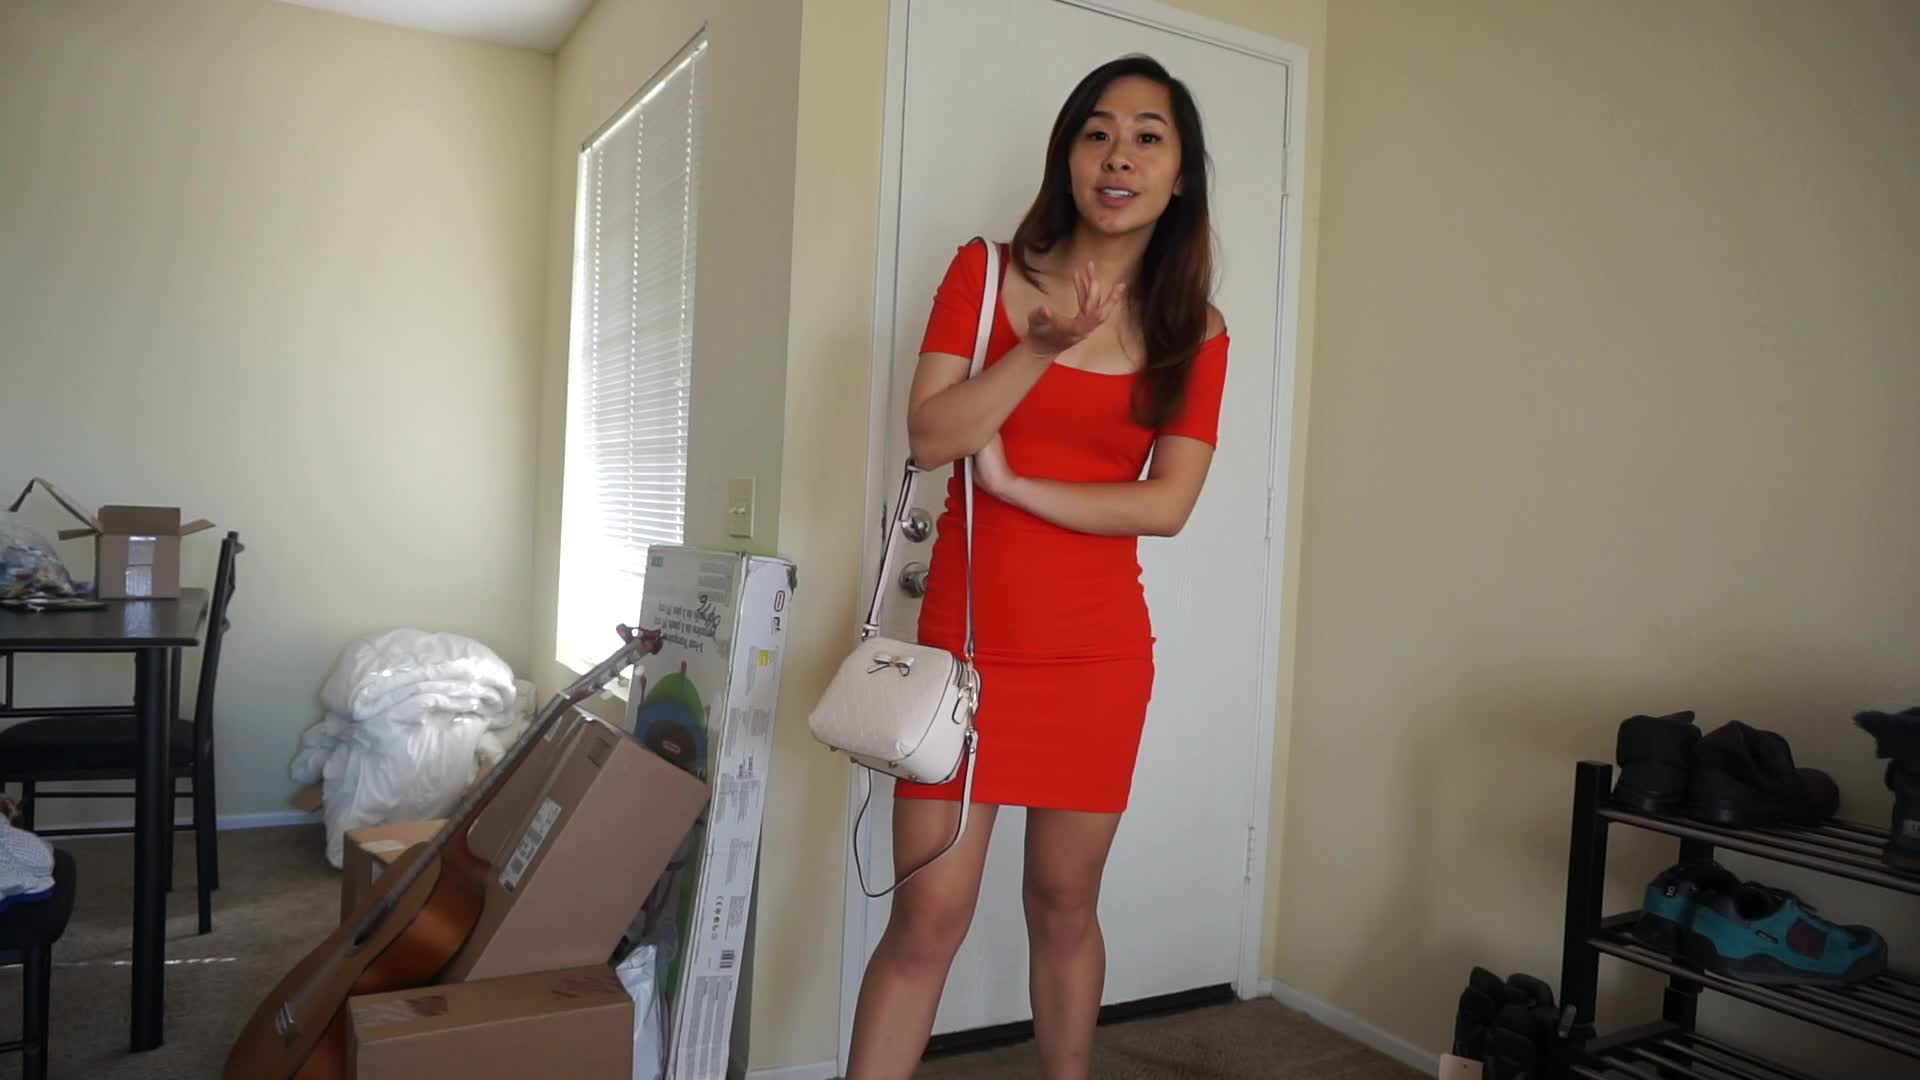 """""""Kaedia Lang"""" (Asian, Dildos, High Heels, Role Play, Taboo) After Your Sister's Date - ManyVids Production"""